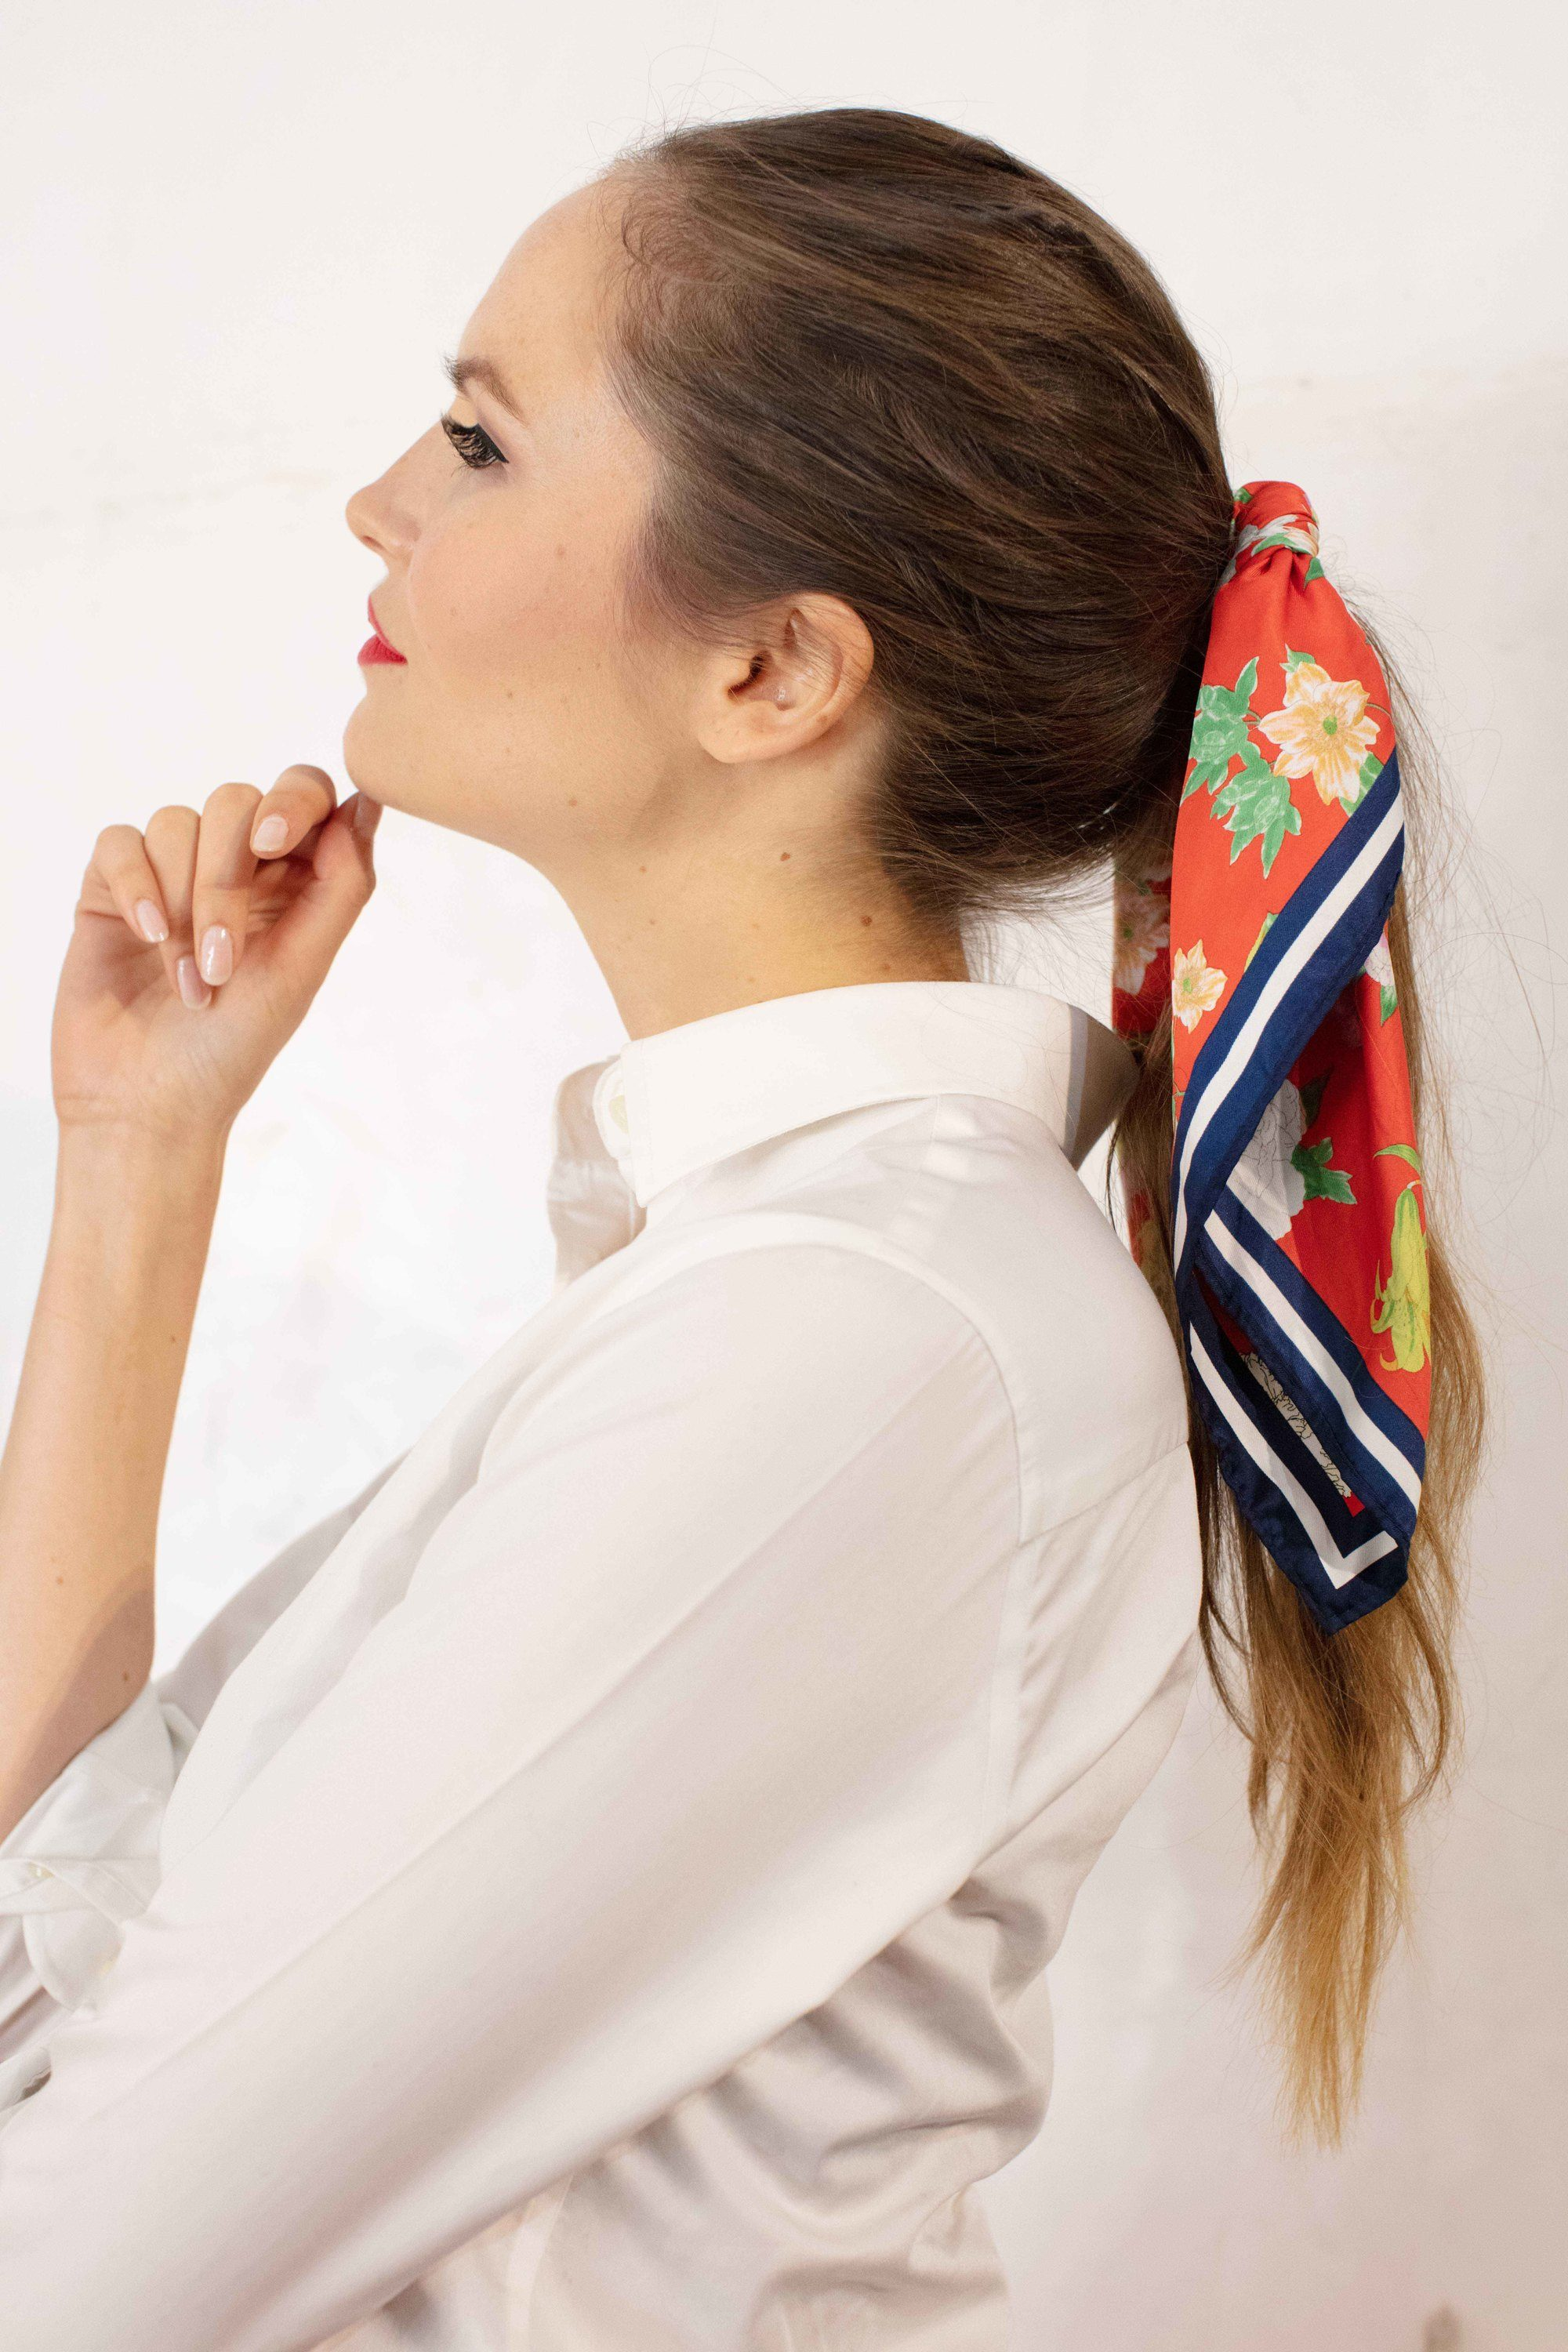 Retro hairstyles: Close up shot of a woman with medium brown long hair styled into a retro ponytail with a scarf backstage at Goodwood festival